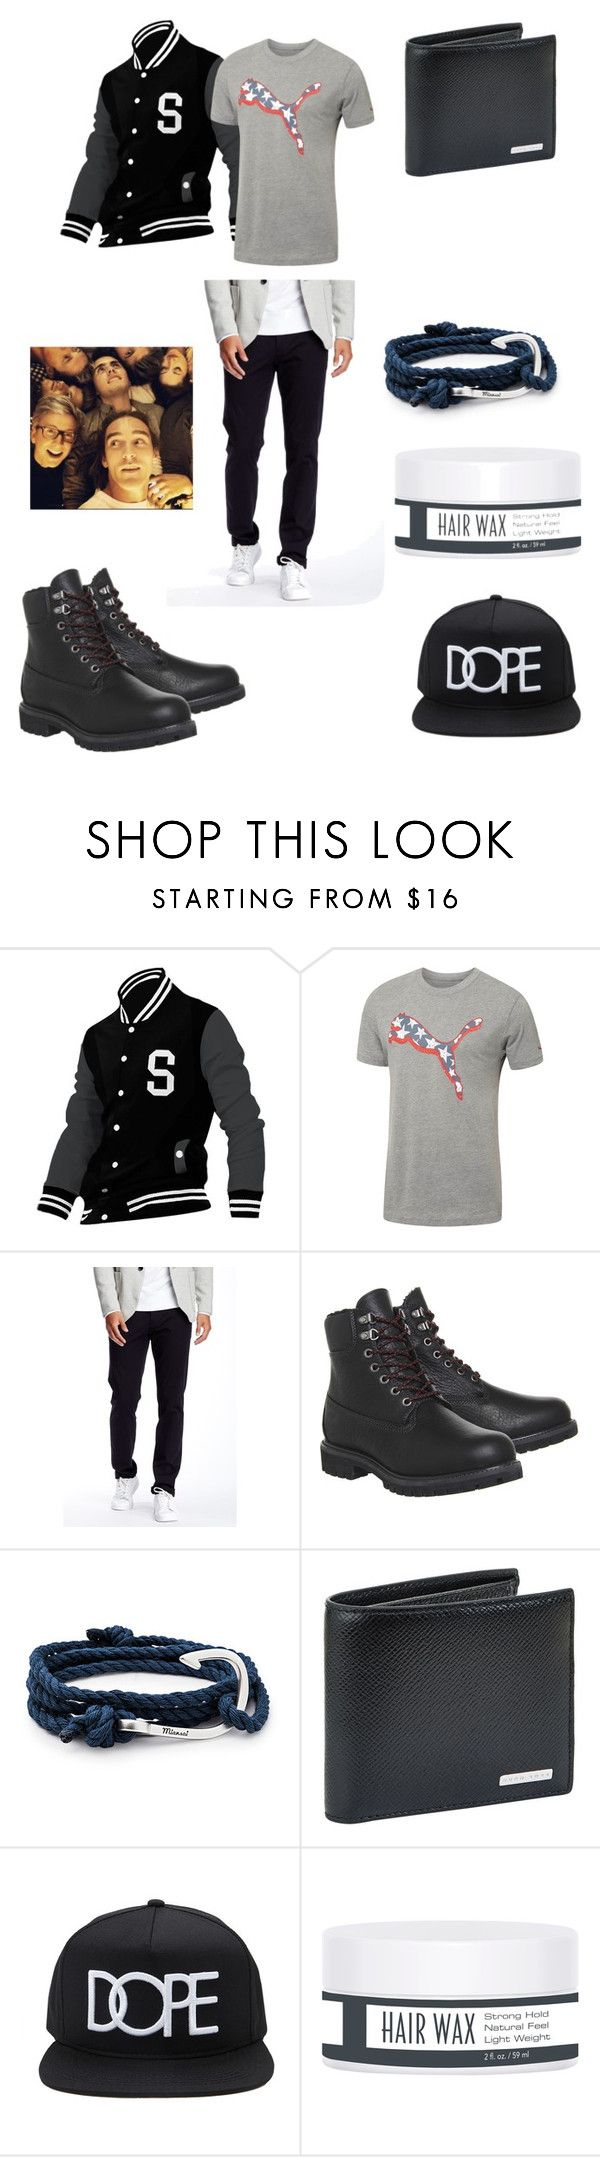 """Marbob  + Nimbob = "" by elliemack19 ❤ liked on Polyvore featuring Allegra K, Puma, Good Man Brand, Timberland, MIANSAI, BOSS Hugo Boss, Forever 21, men's fashion and menswear"